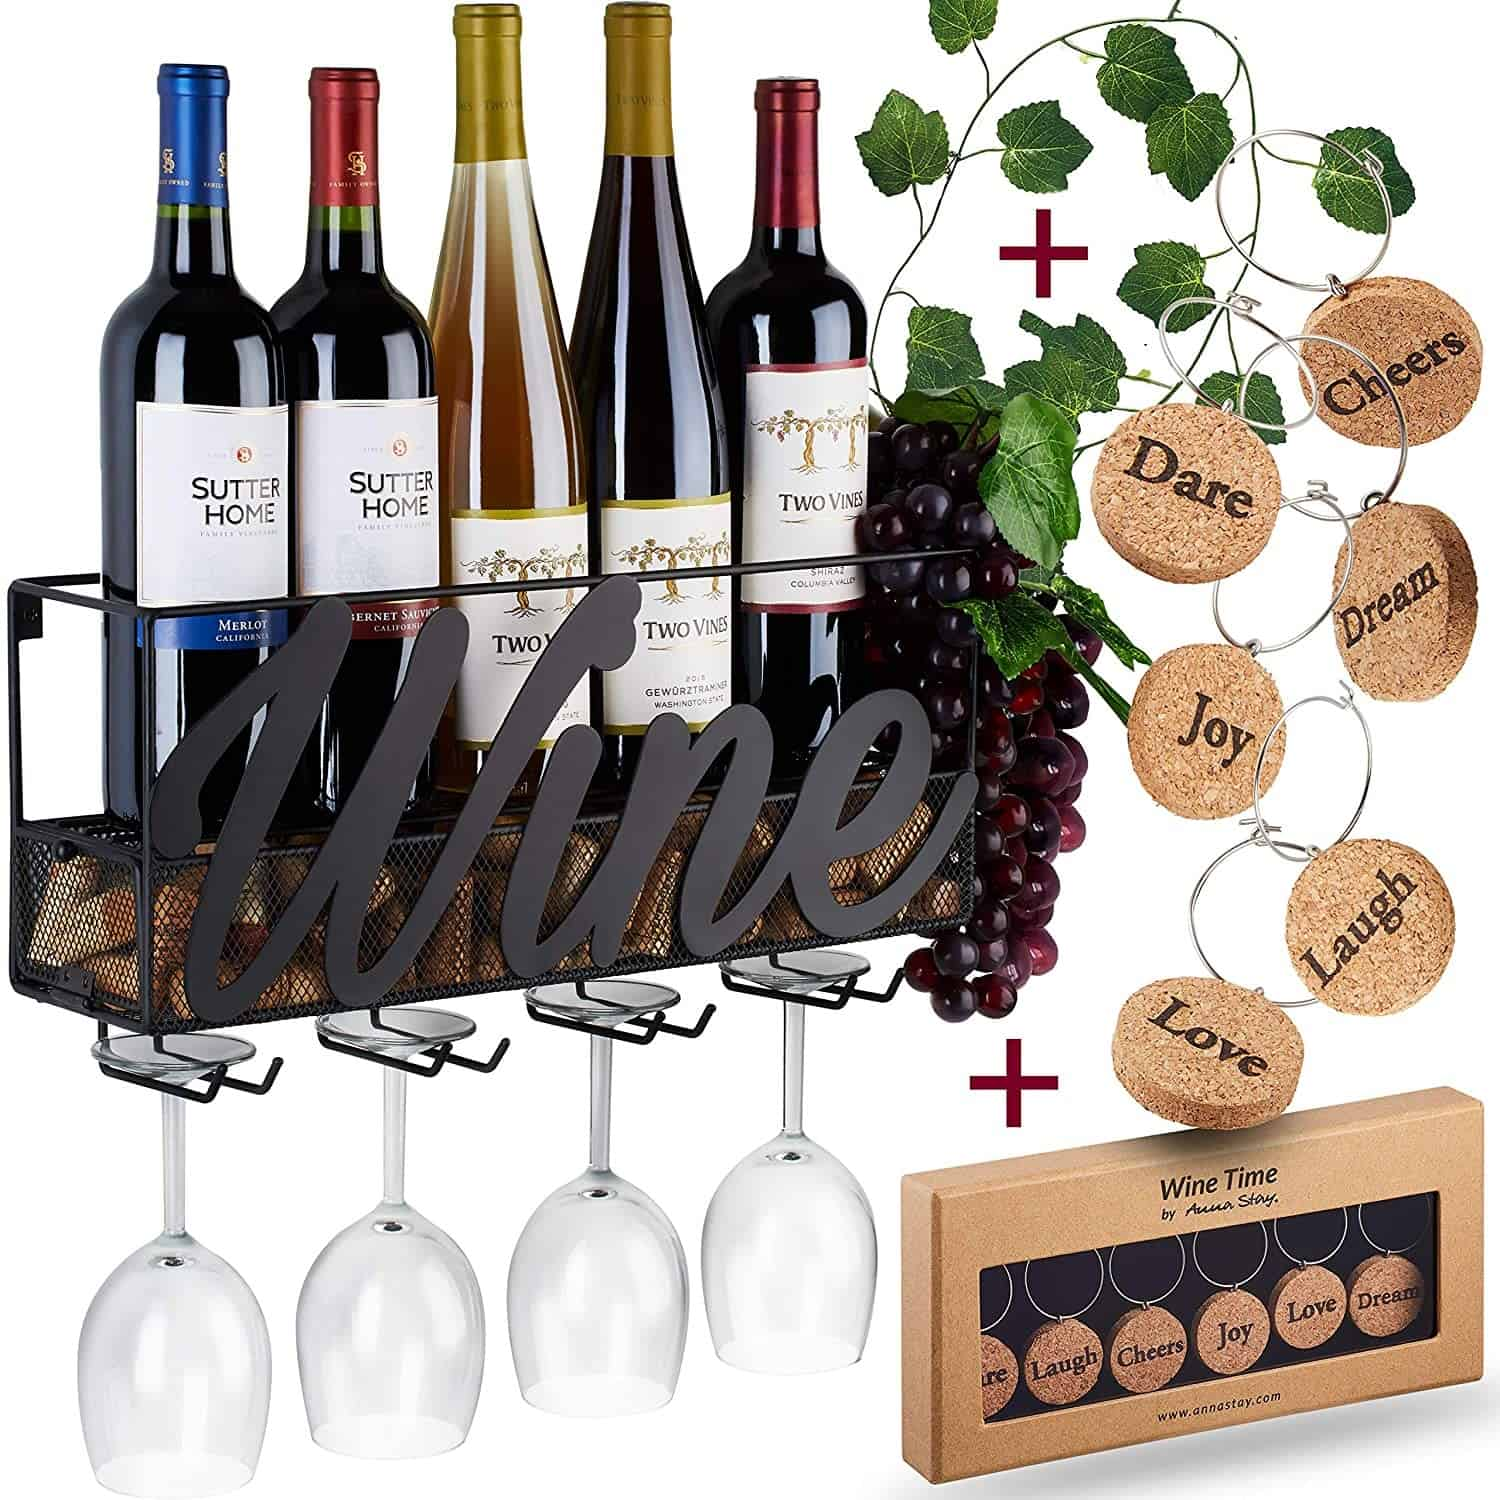 5. Gorgeous Black Metal Wine Rack